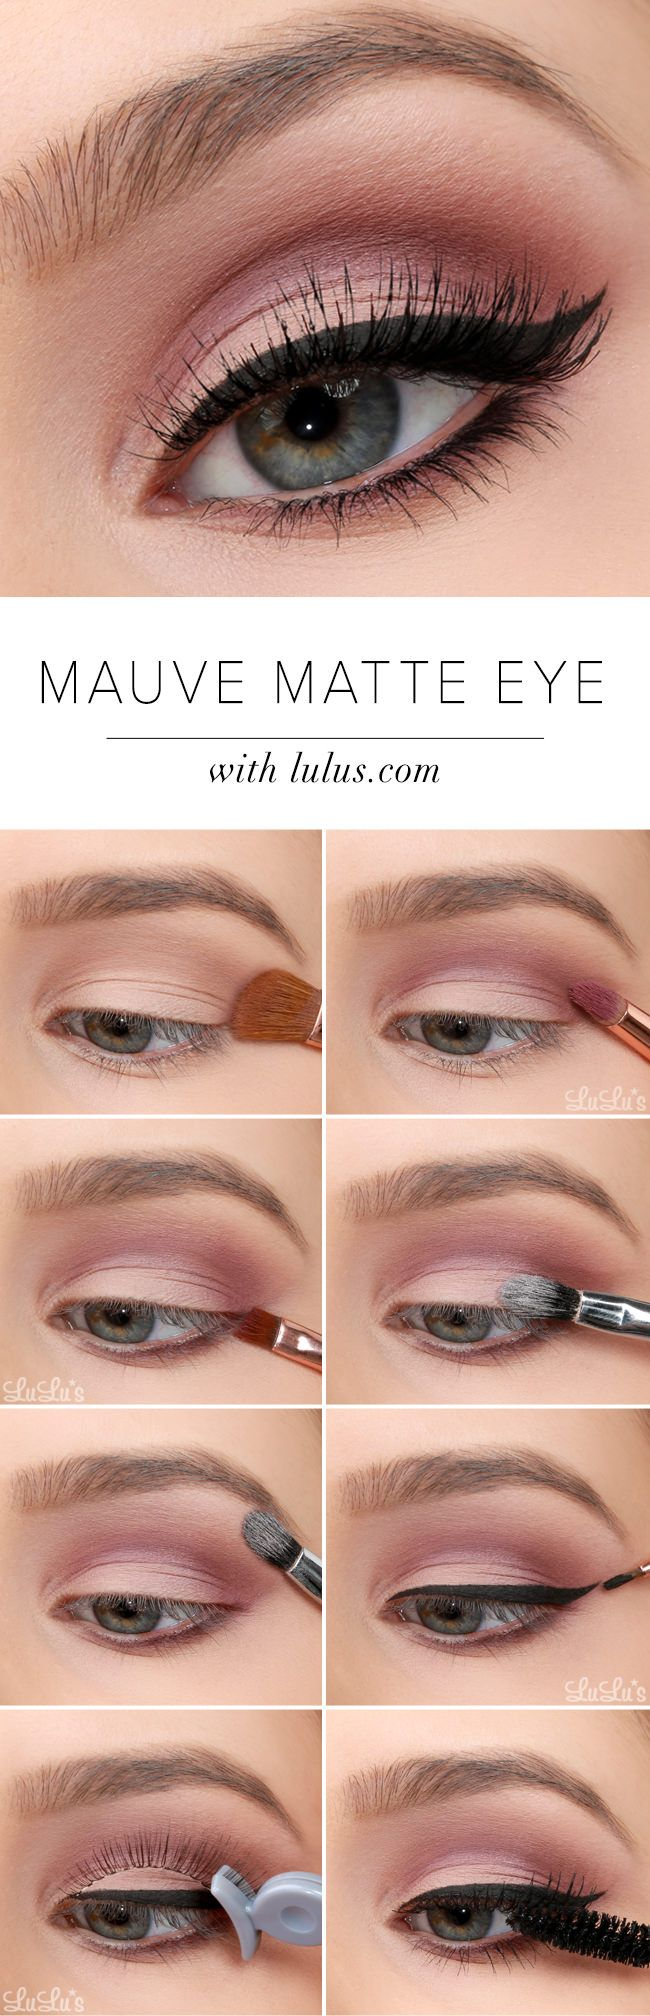 Best Ideas For Makeup Tutorials See This Easy Mauve Matte Eye